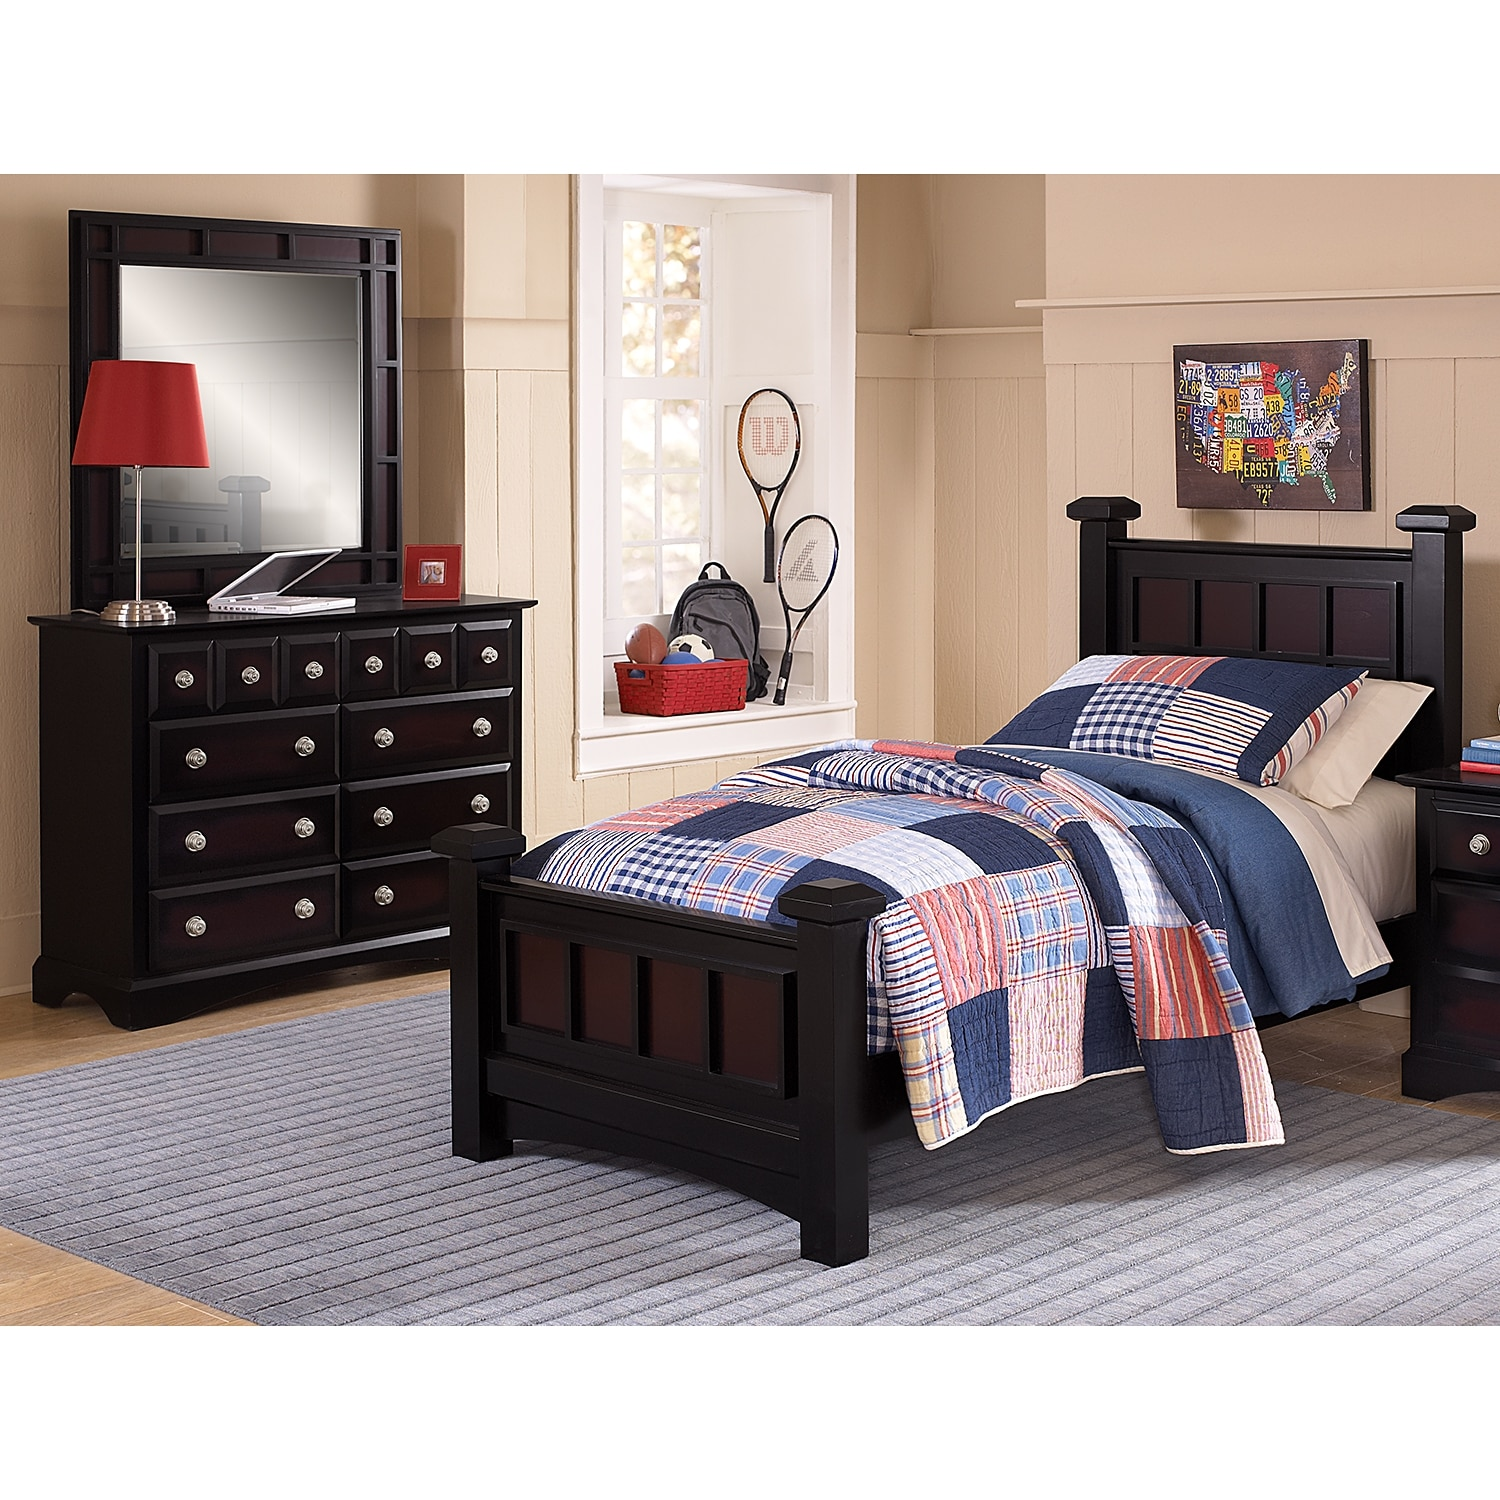 Kids Bedroom Furniture Packages Shop Kids Furniture Packages American Signature Furniture